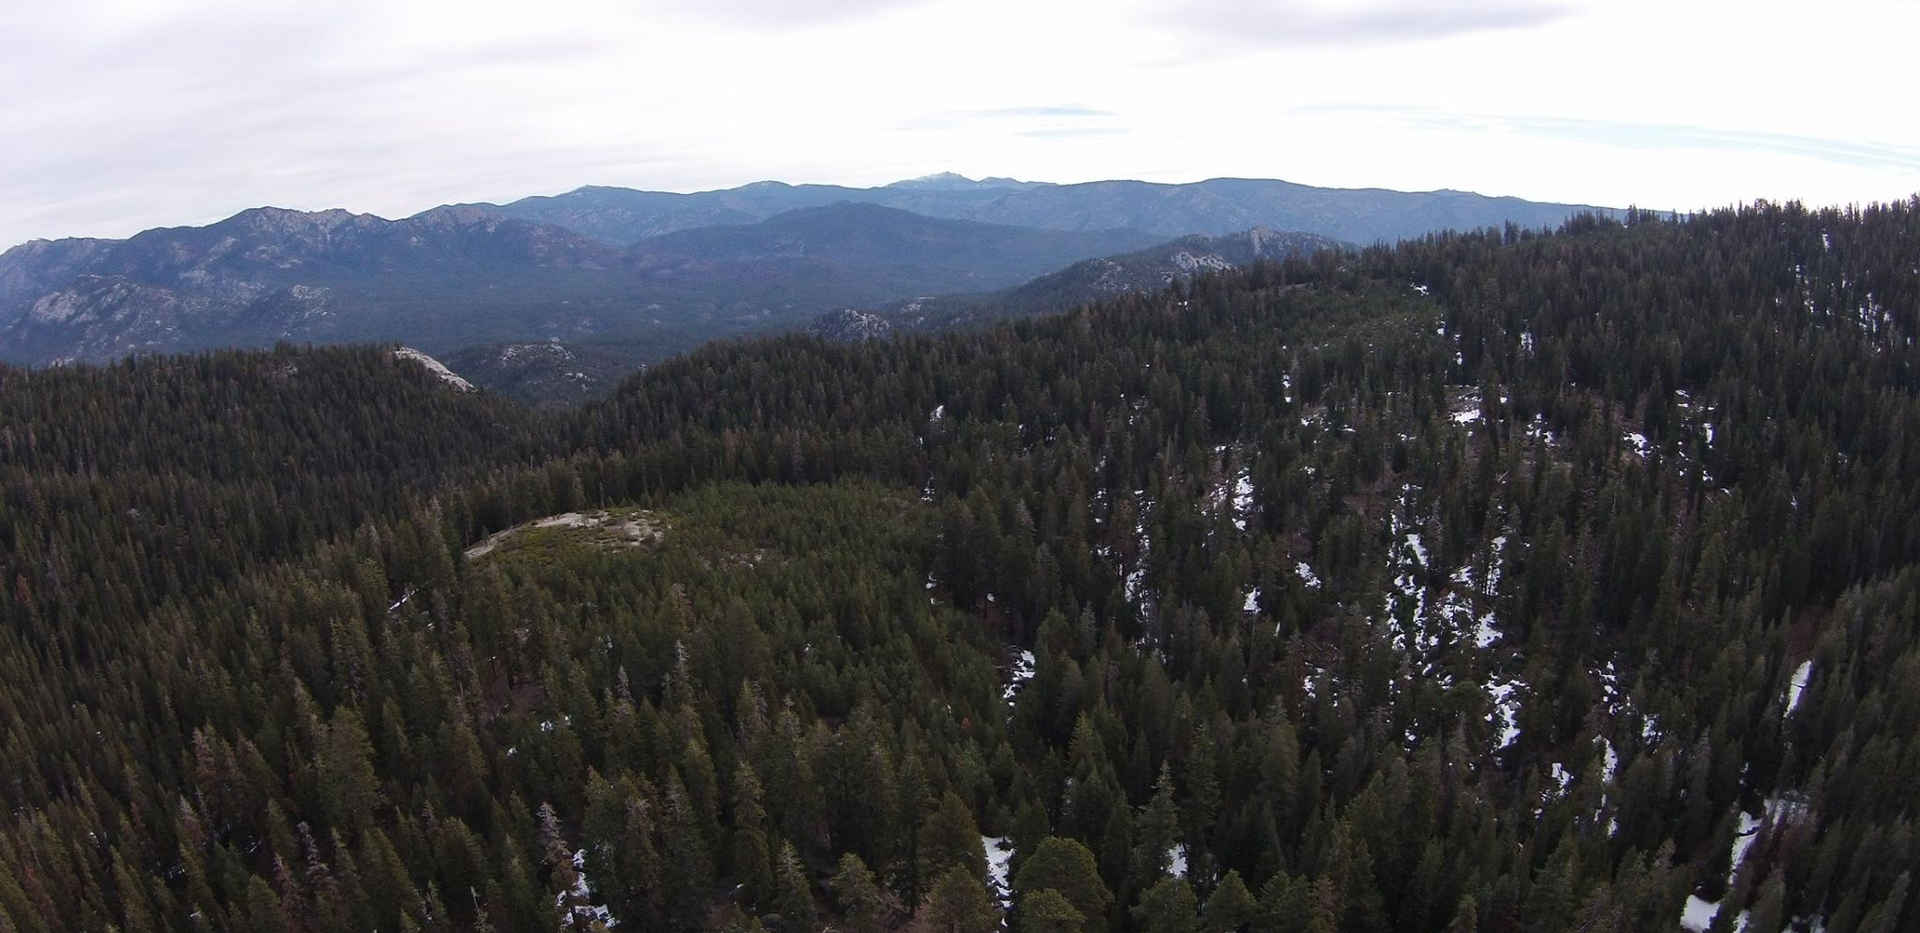 View of the Golden Trout Wilderness